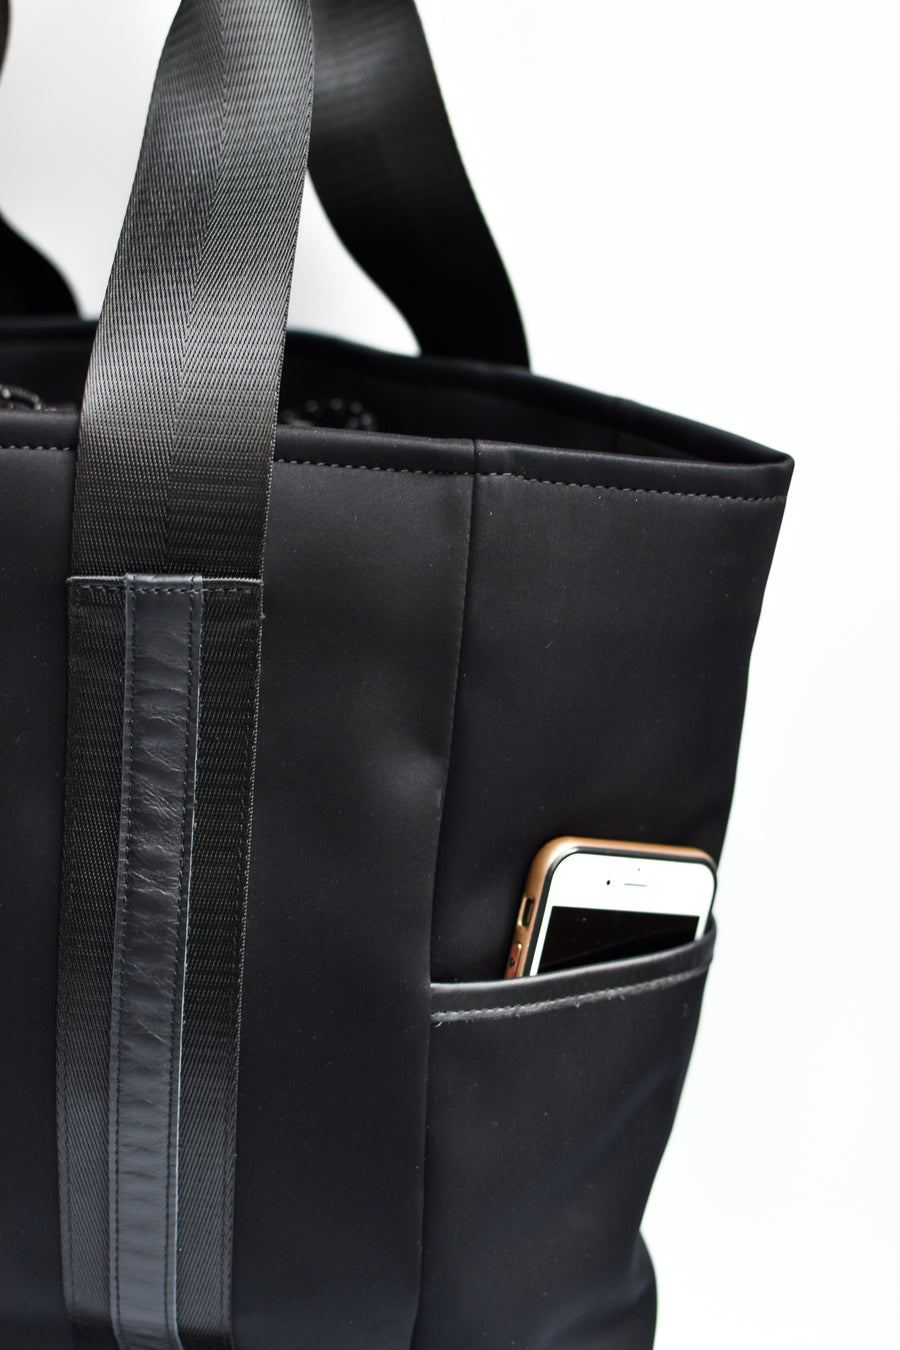 Close up of exterior pocket on black neoprene tote bag with high shine cinch top closure and leather details.